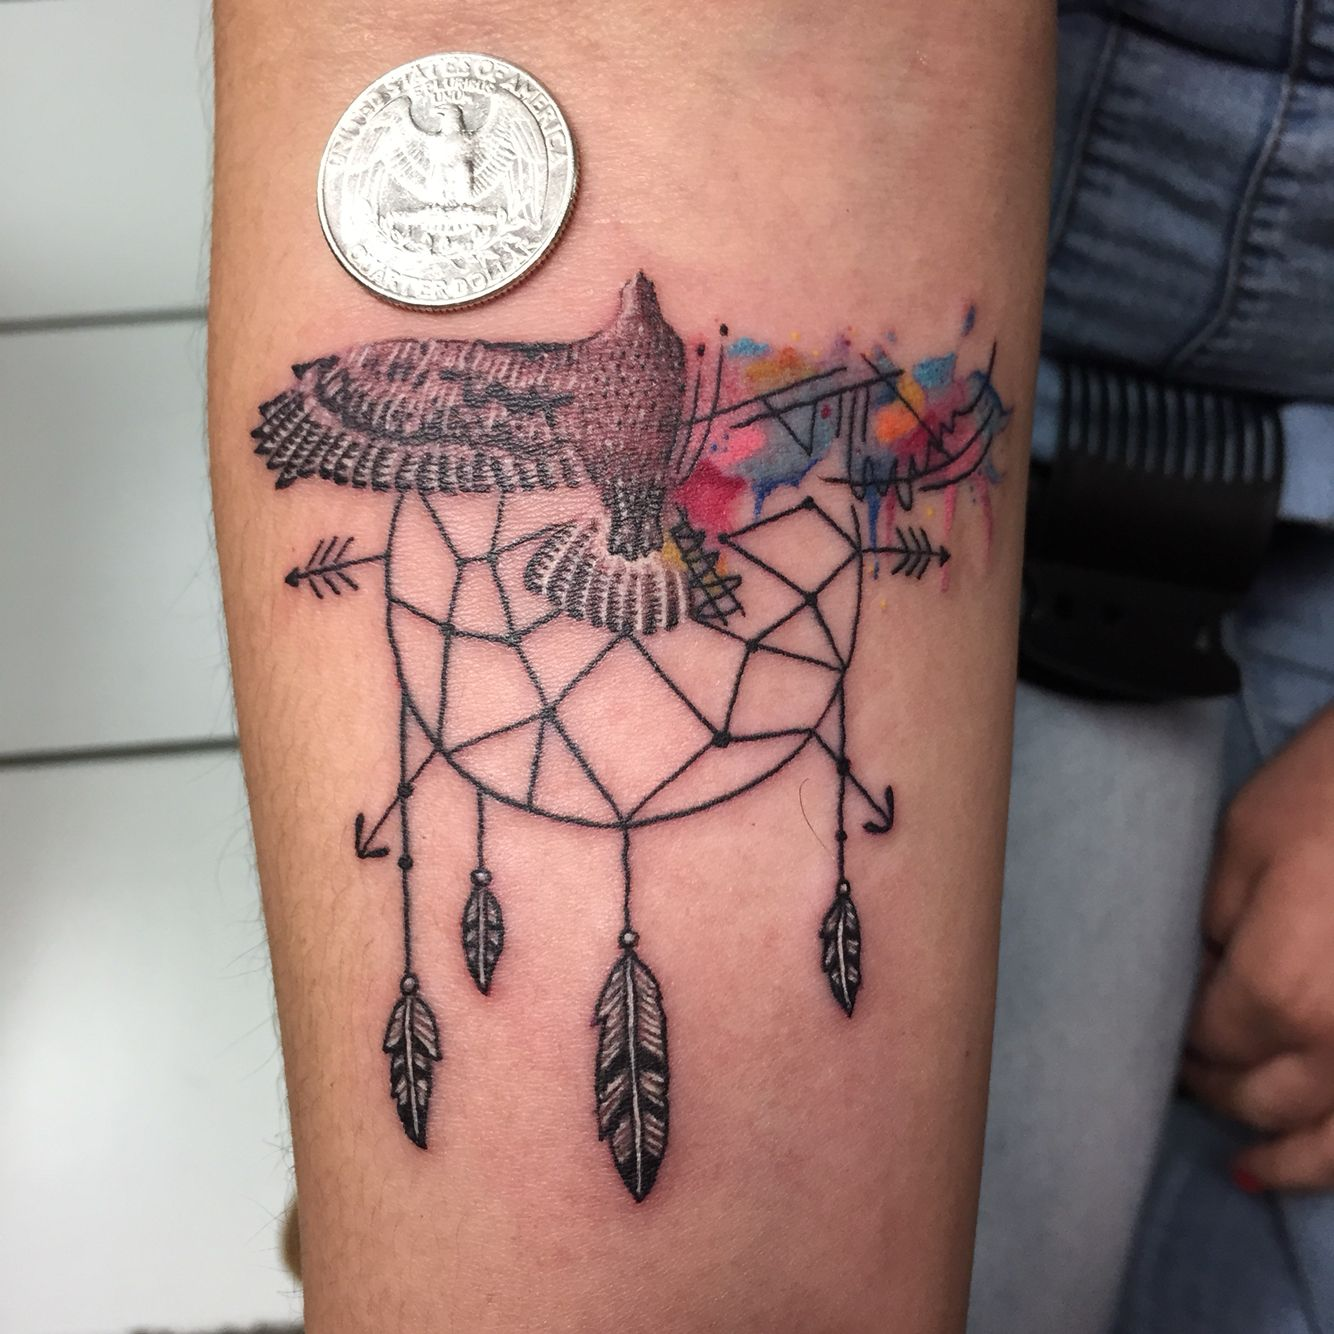 Tattoo Quotes Hawk: Bird Tattoo Watercolor Dream Catcher Hawk Eagle Fly